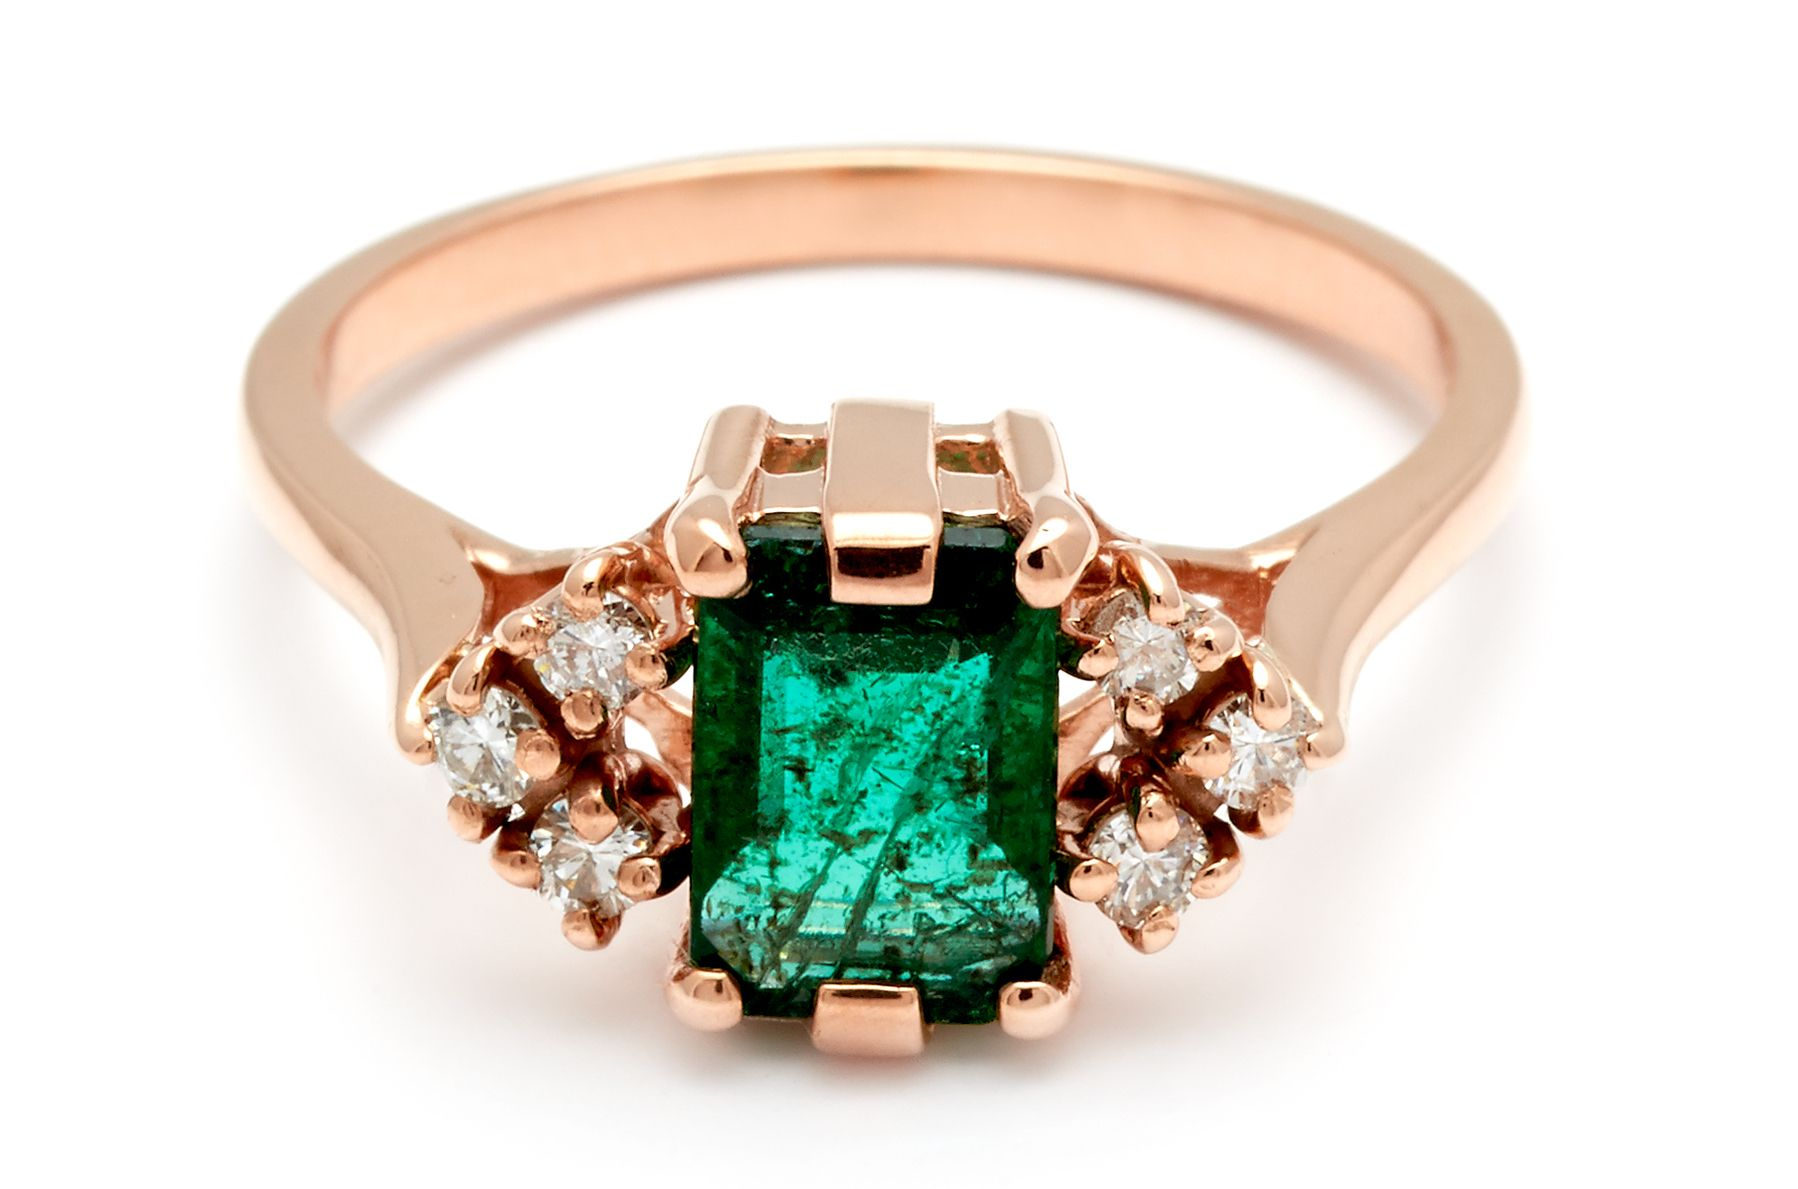 mod ring em band blue sapp emerald engagement products cultured grown lab twig sapphire cut